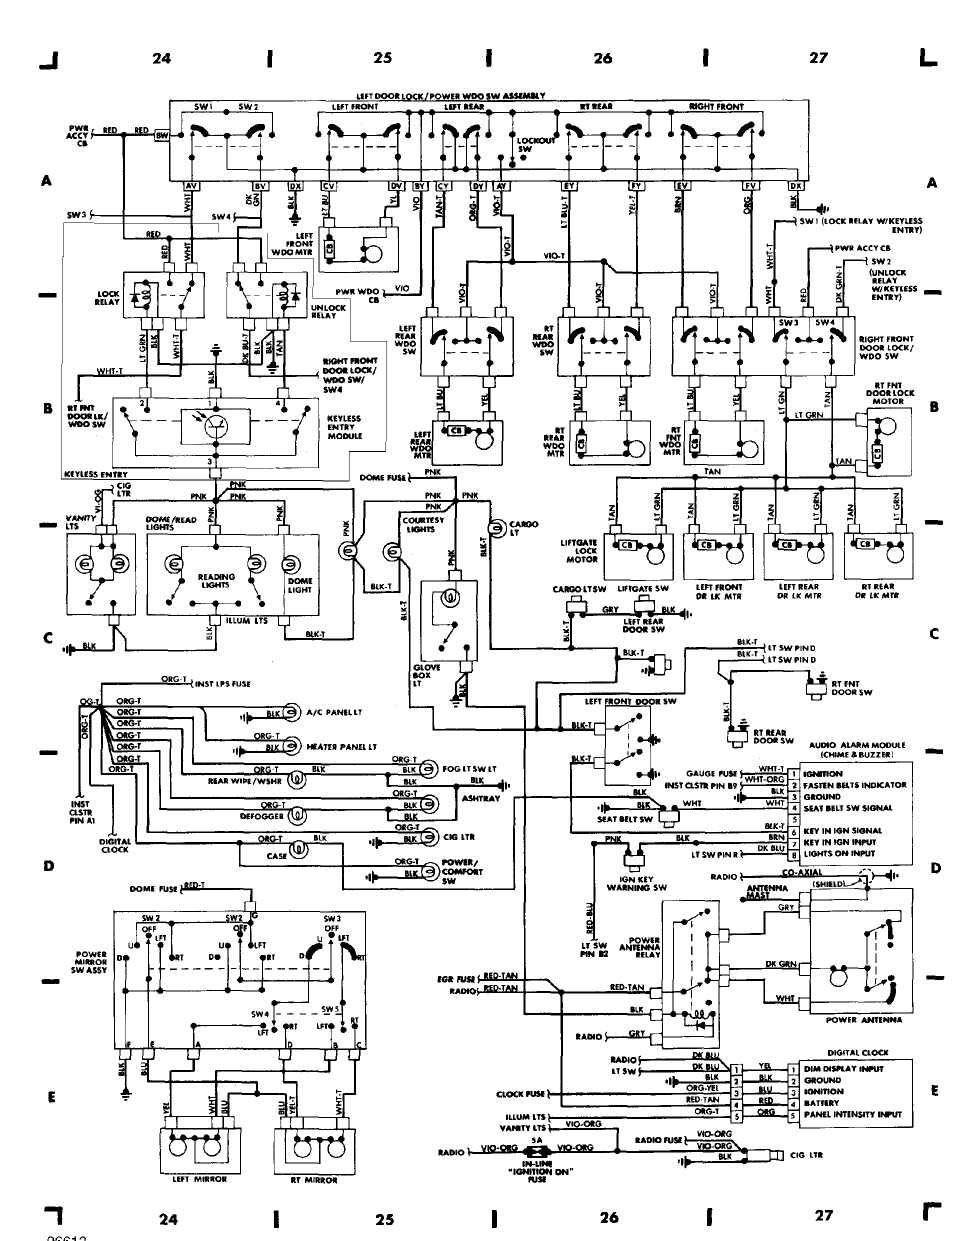 wiring_diagrams_html_61f5e0ad wiring diagrams 1984 1991 jeep cherokee (xj) jeep engine wiring harness 1998 jeep cherokee 4.0 at couponss.co